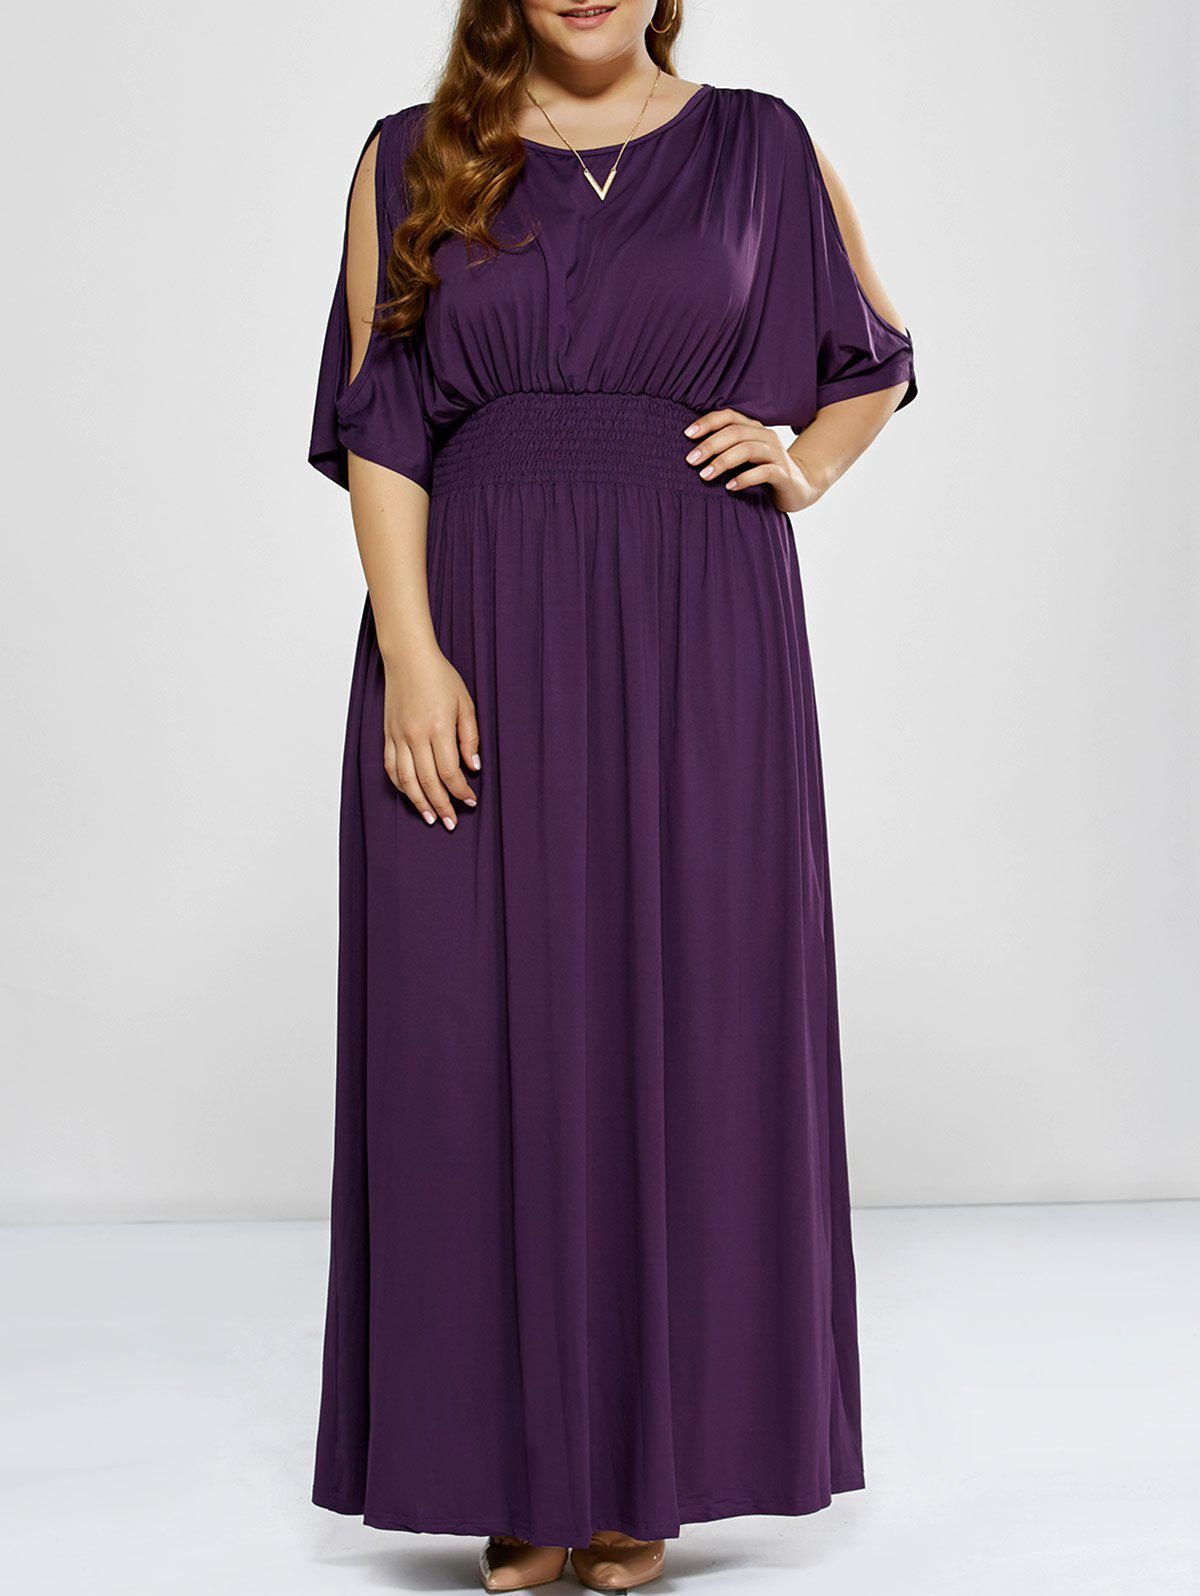 Plus Size Long Cold Shoulder Maxi Prom DressWOMEN<br><br>Size: 2XL; Color: PURPLE; Style: Casual; Material: Polyester; Silhouette: A-Line; Dresses Length: Floor-Length; Neckline: Round Collar; Sleeve Length: 3/4 Length Sleeves; Pattern Type: Solid; With Belt: No; Season: Fall,Spring; Weight: 0.523kg; Package Contents: 1 x Dress;